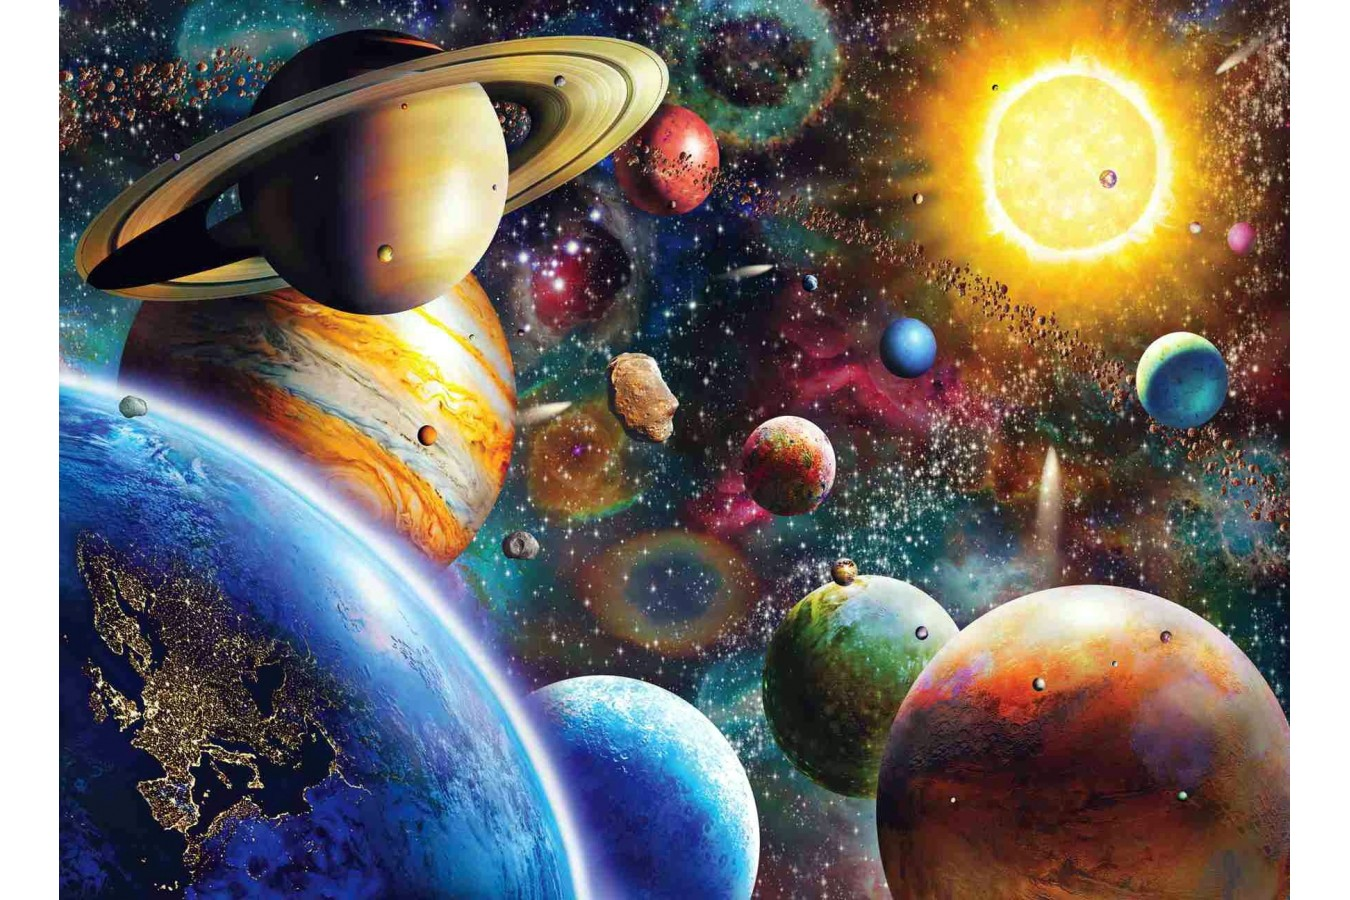 Puzzle Anatolian - Planets in Space, 1000 piese (1033) imagine